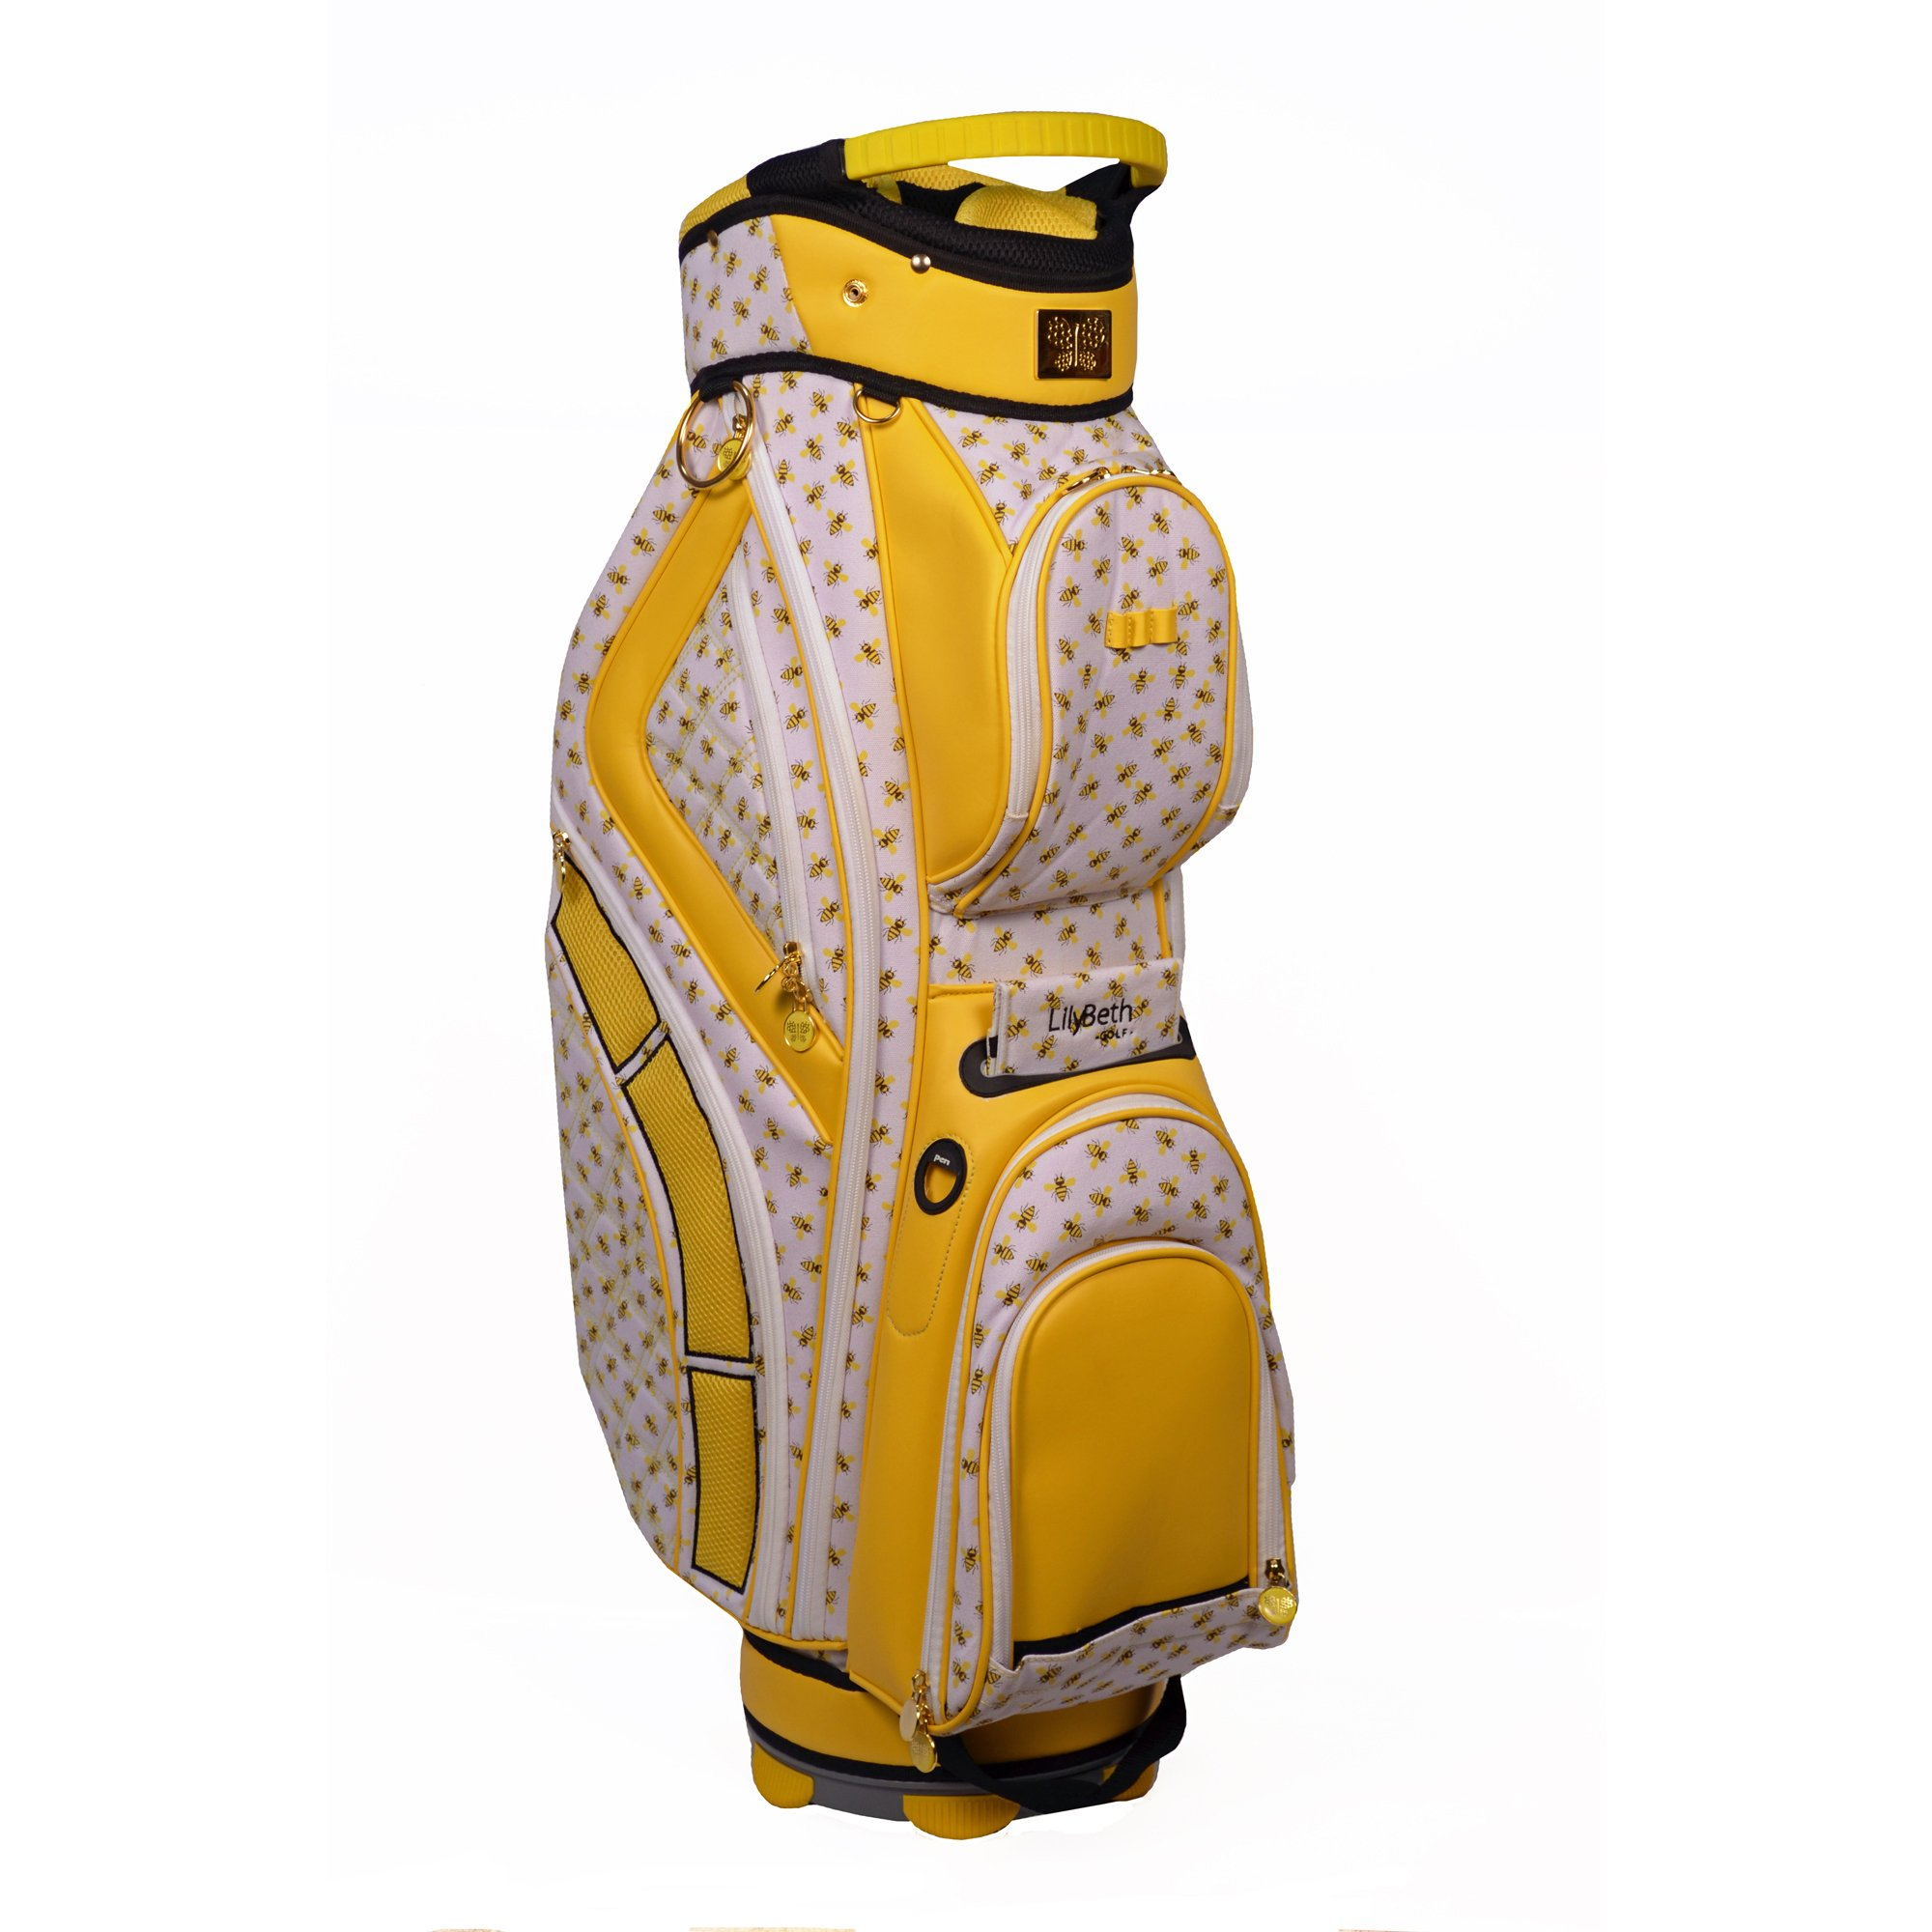 LilyBeth GOLF Cart Bag, Yellow Bumble Bee